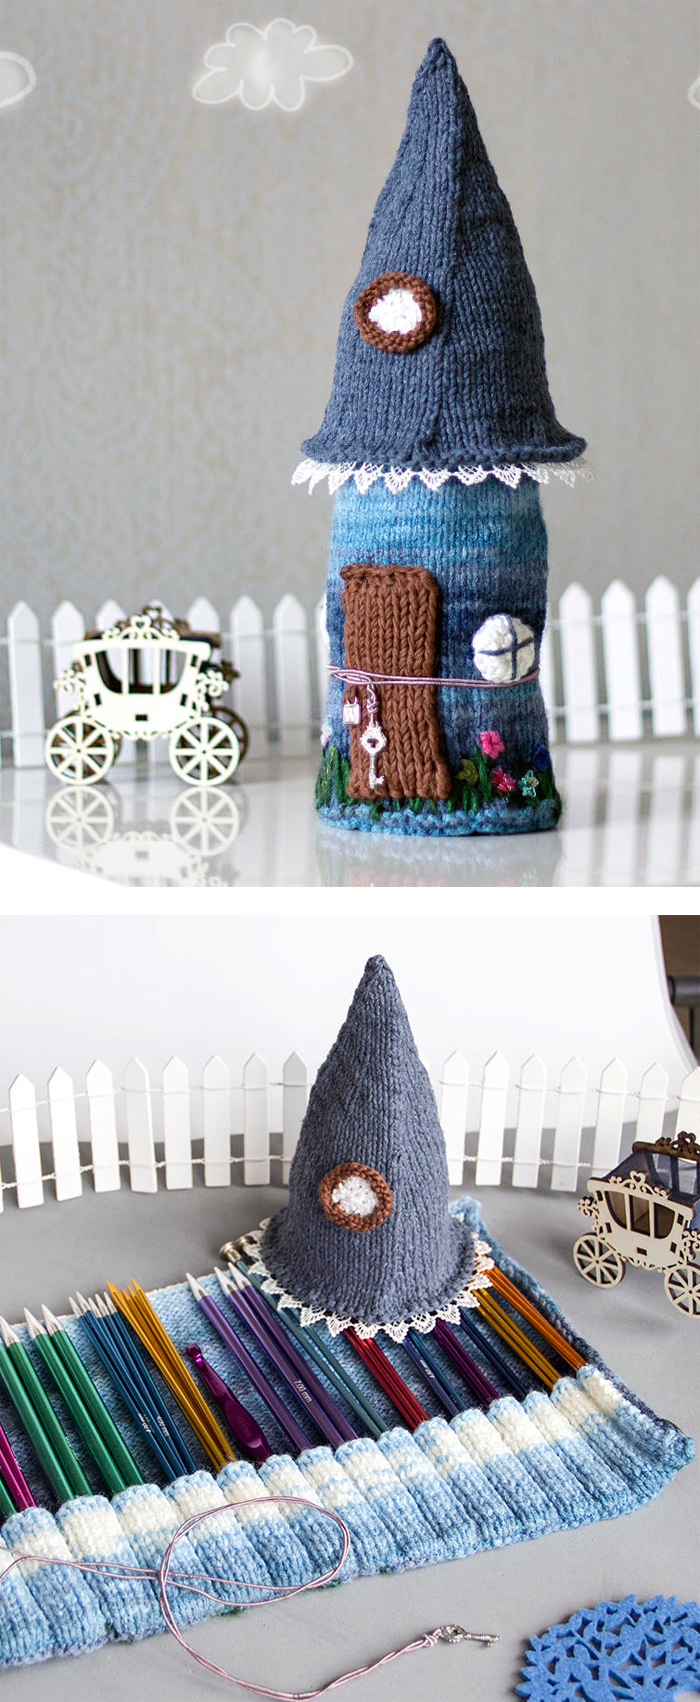 Knitting Pattern for Fairy Tale House Needle or Pencil Case